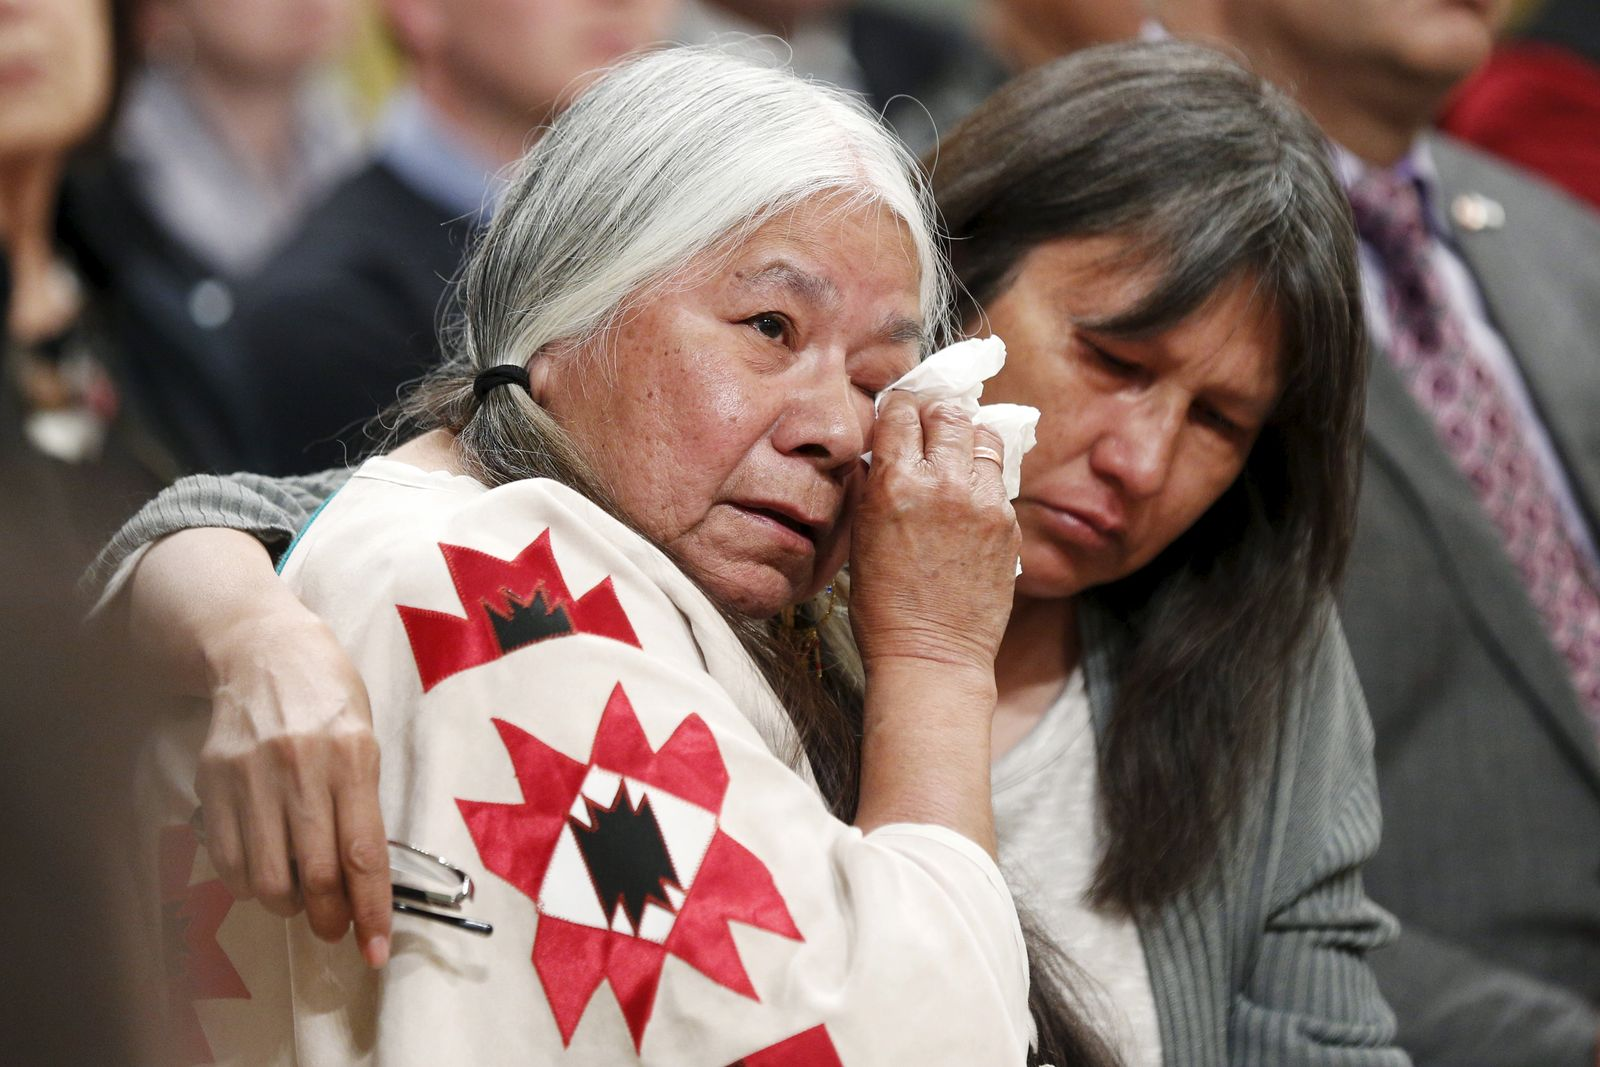 Residential School survivor Lorna Standingready is comforted during the Truth and Reconciliation Commission of Canada closing ceremony at Rideau Hall in Ottawa